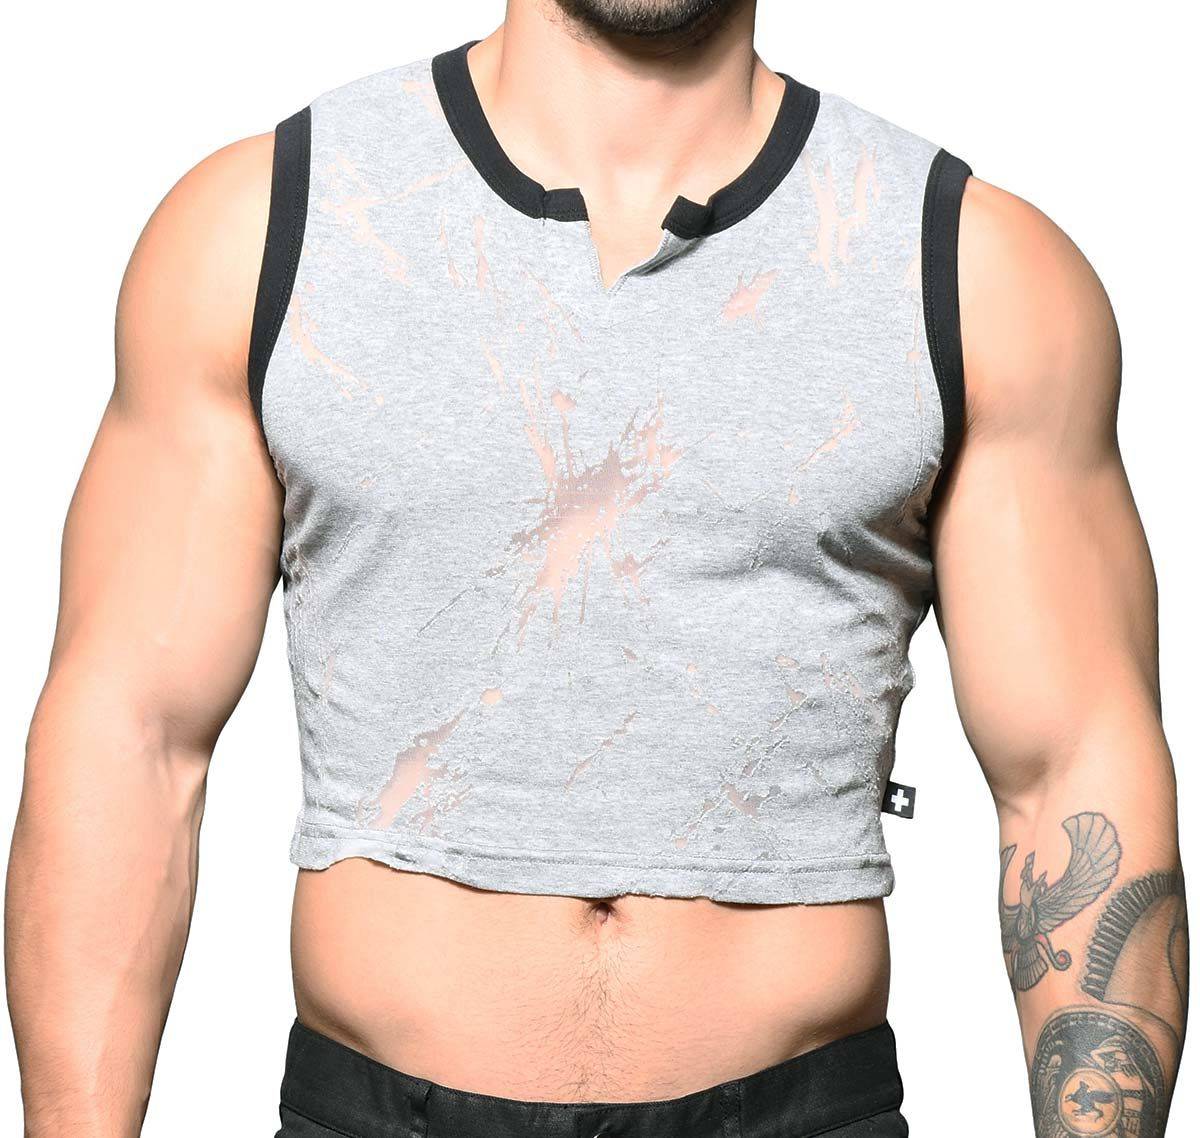 Andrew Christian T-shirt BLAST BURNOUT CROP GYM TANK 2787, grey